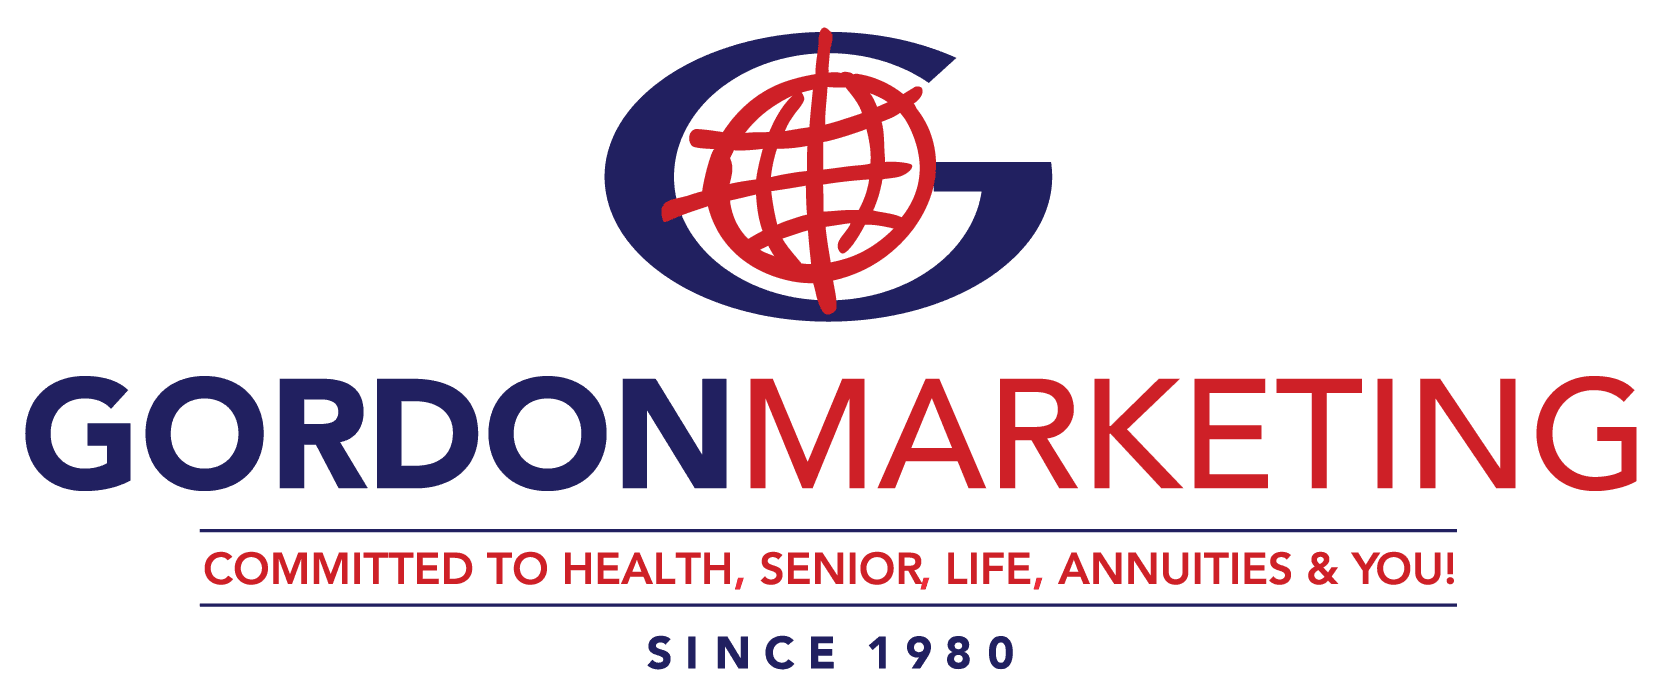 Gordon Marketing | Insurance Broker FMO IMO VMO